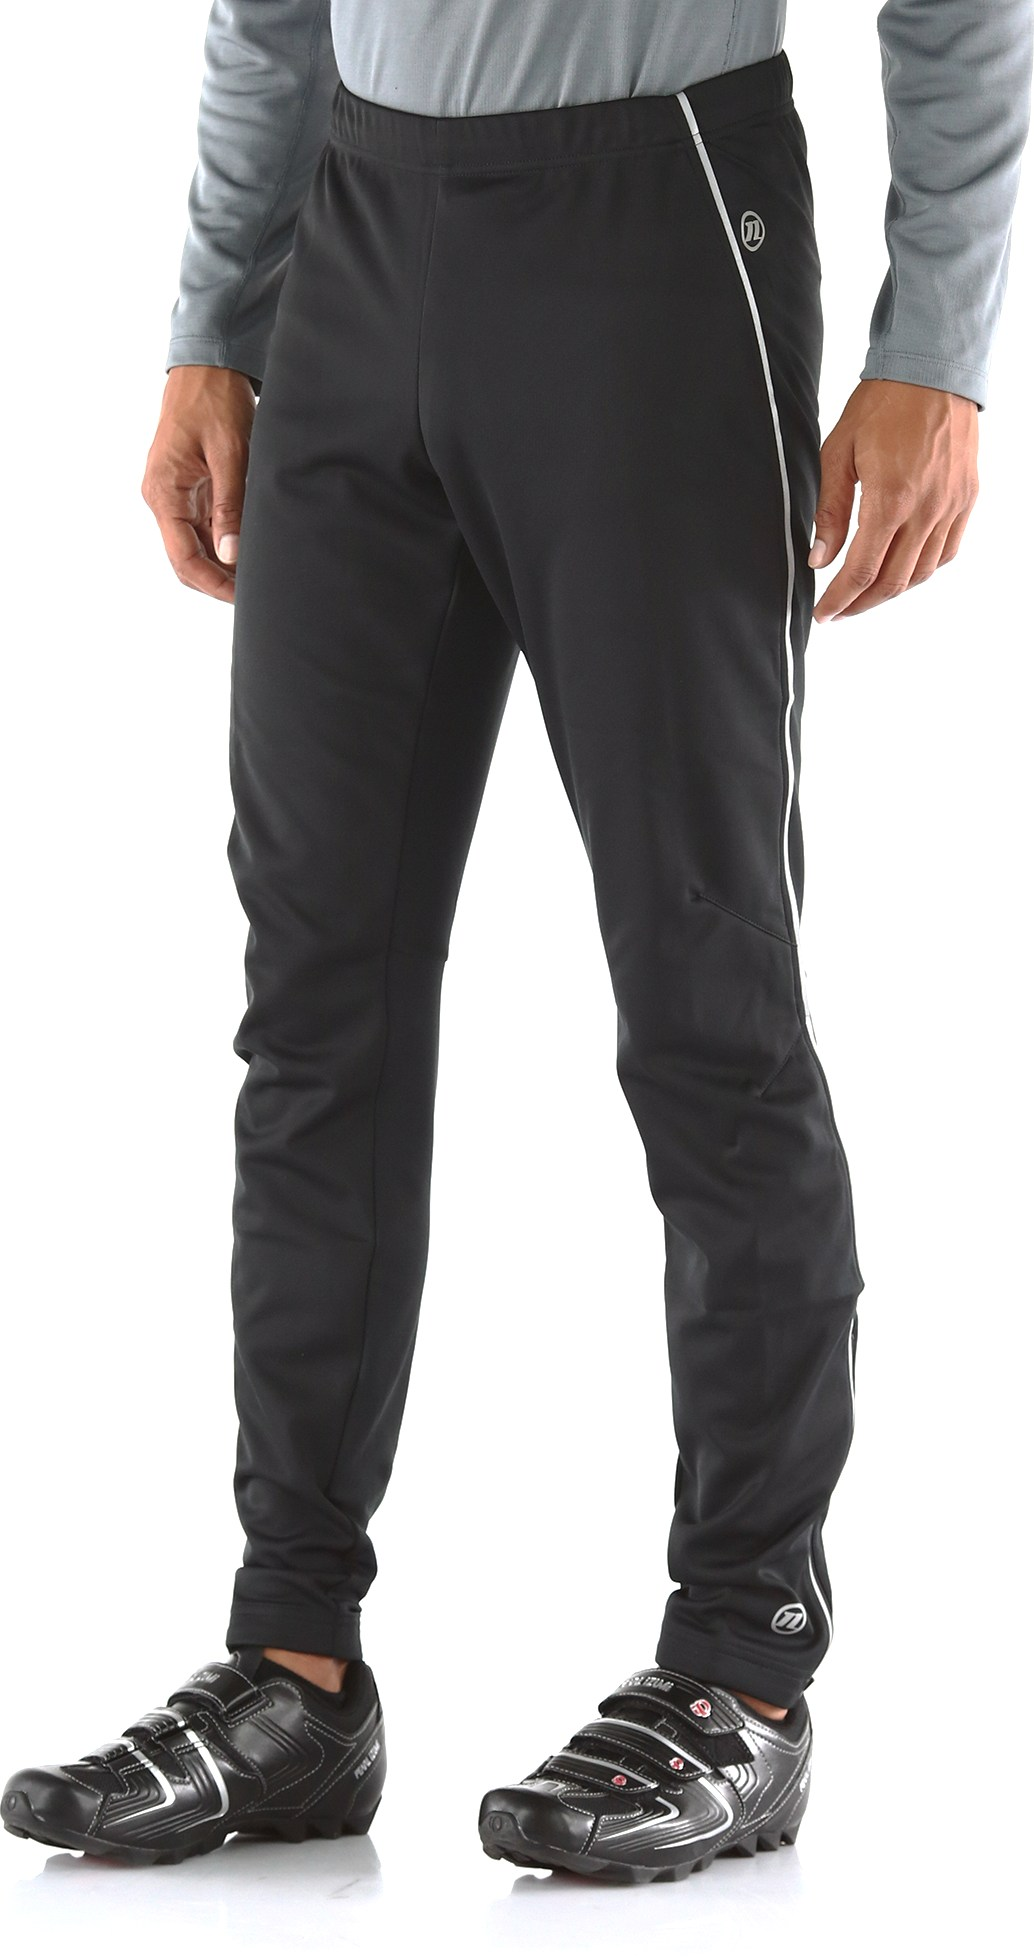 Novara Headwind Bike Pants